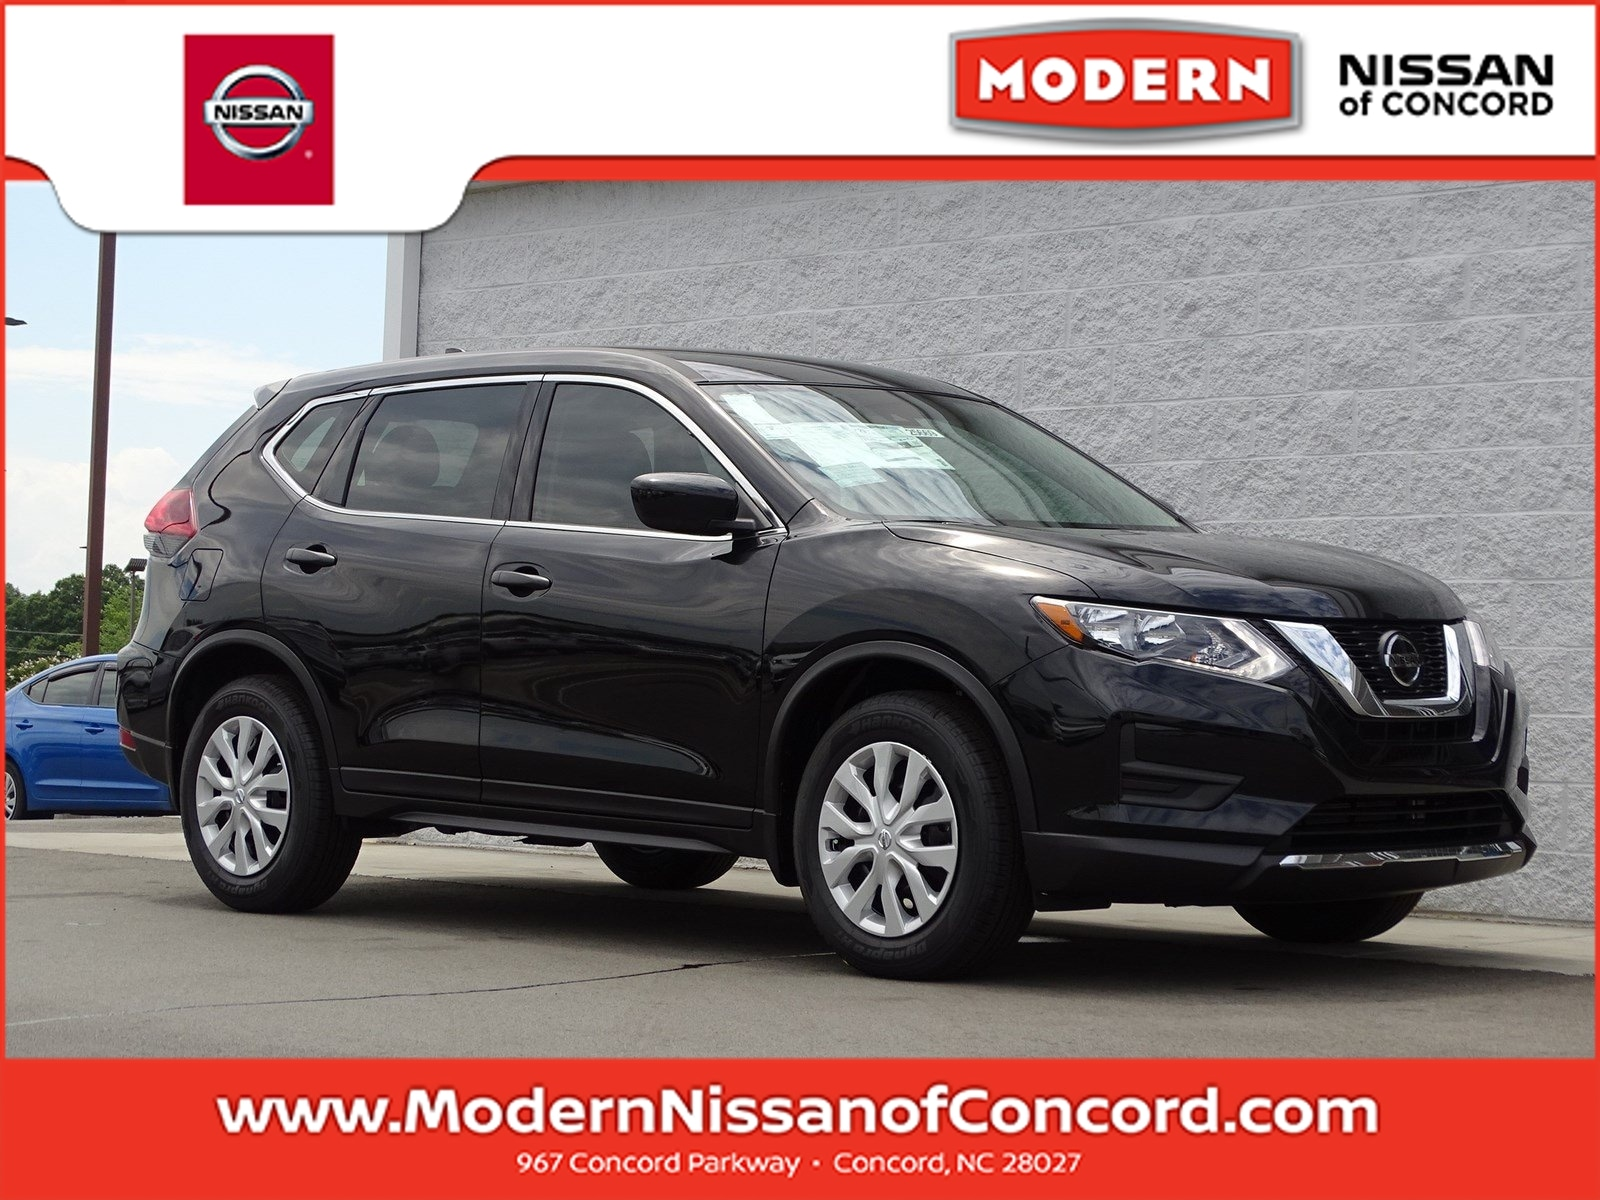 2019 Nissan Rogue For Sale in Concord NC | Modern Nissan of